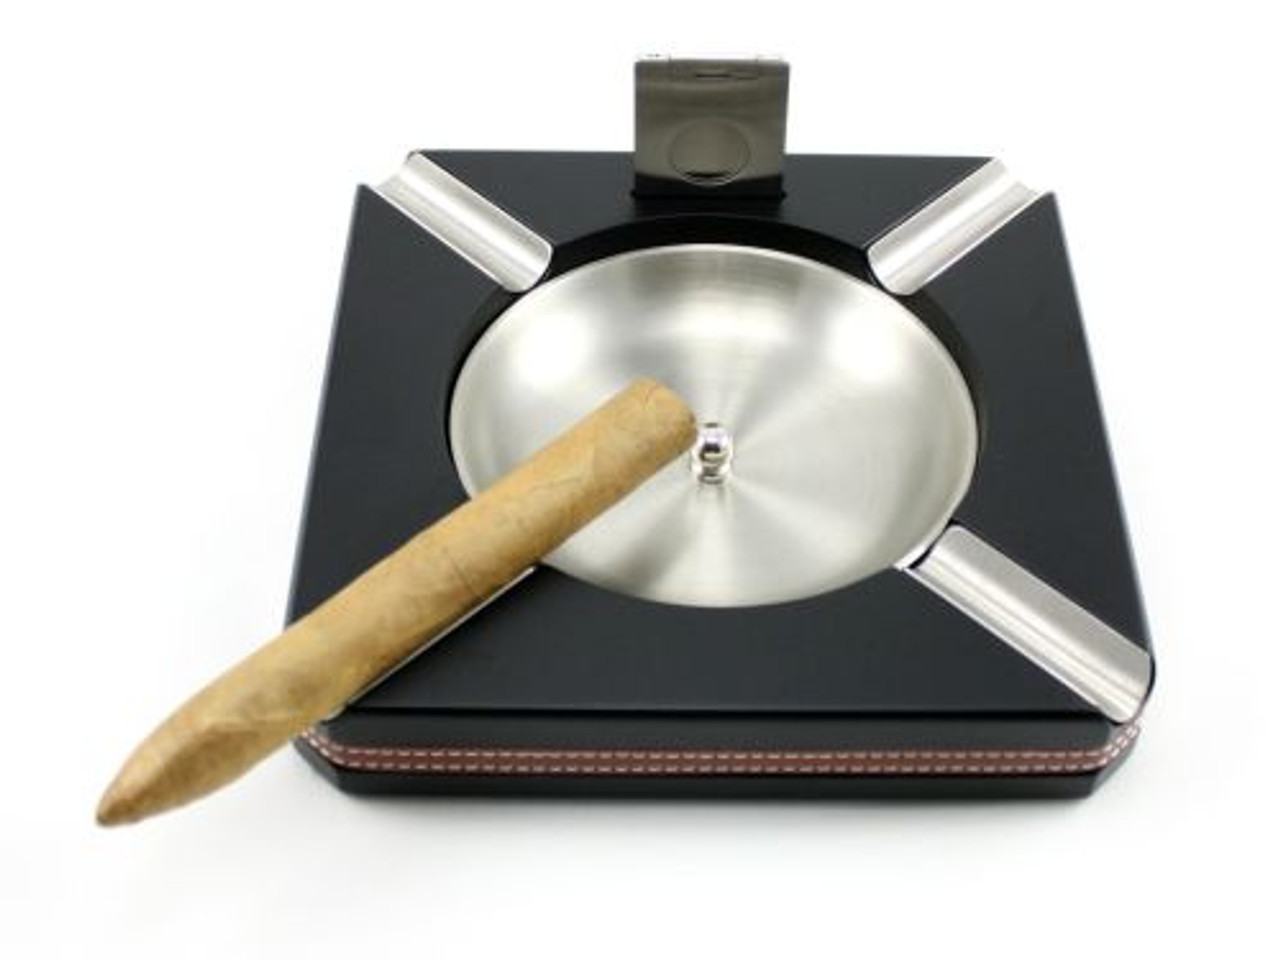 Black Cameron Cigar Ashtray with Cutter